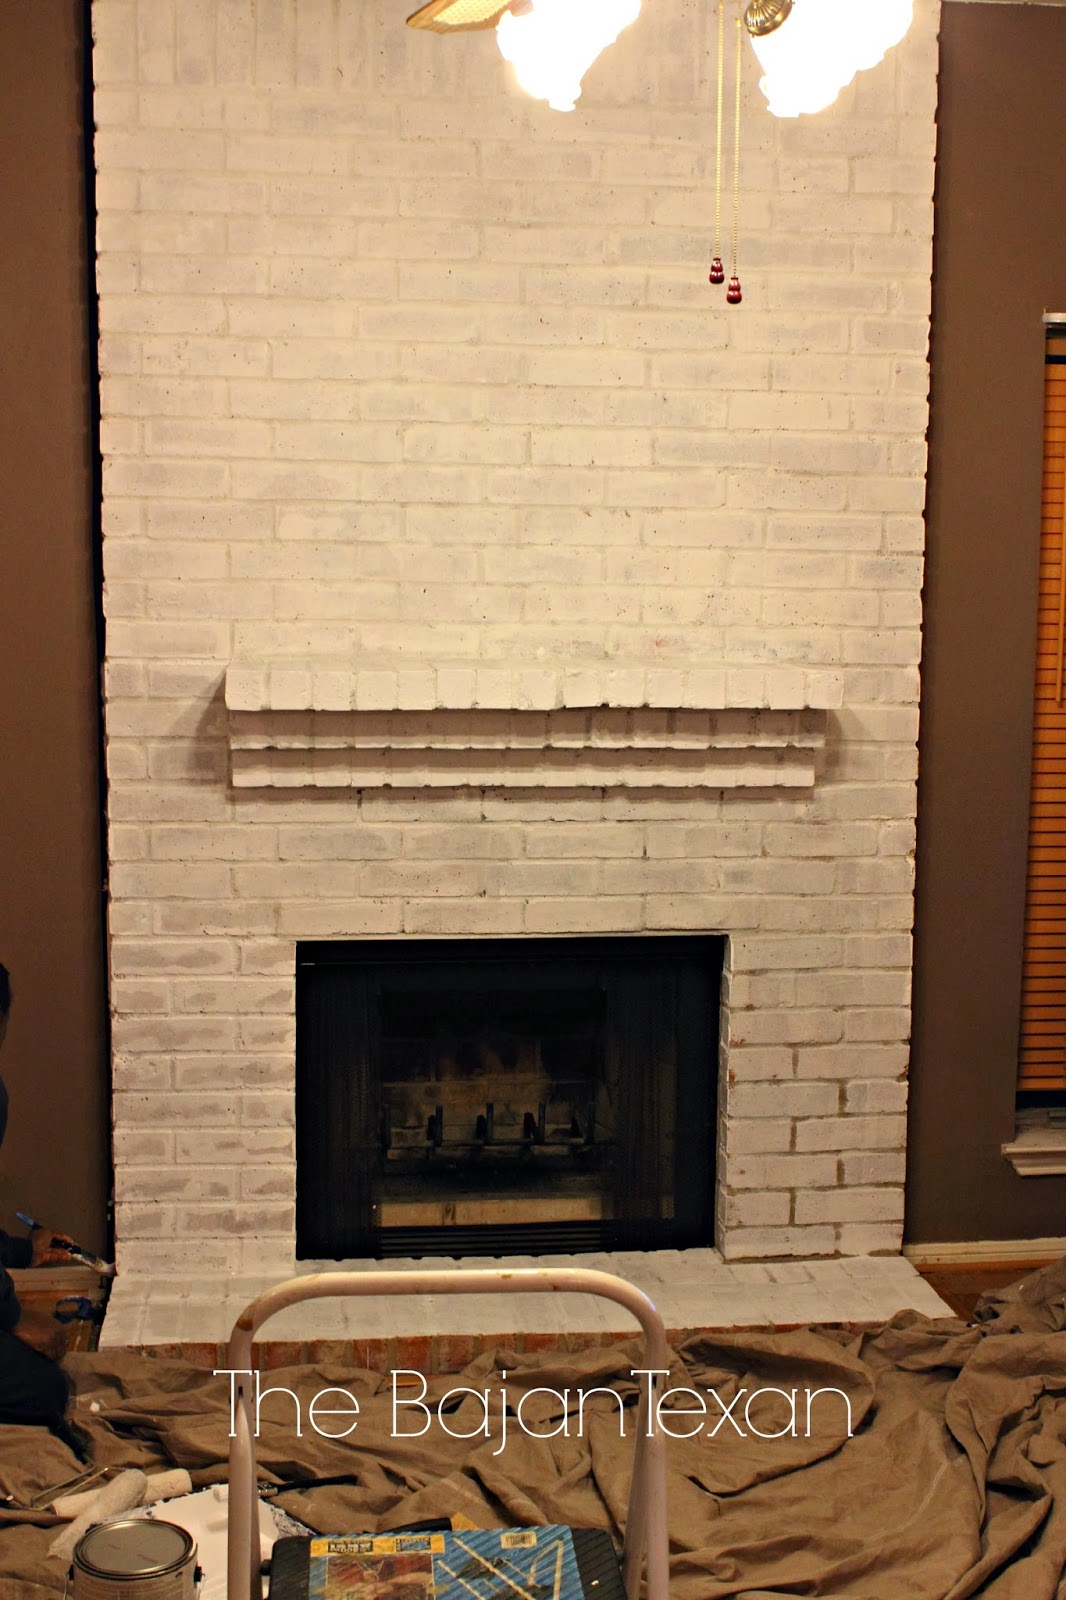 Painting Over Fireplace How To Paint A Brick Fireplace The Bajan Texan